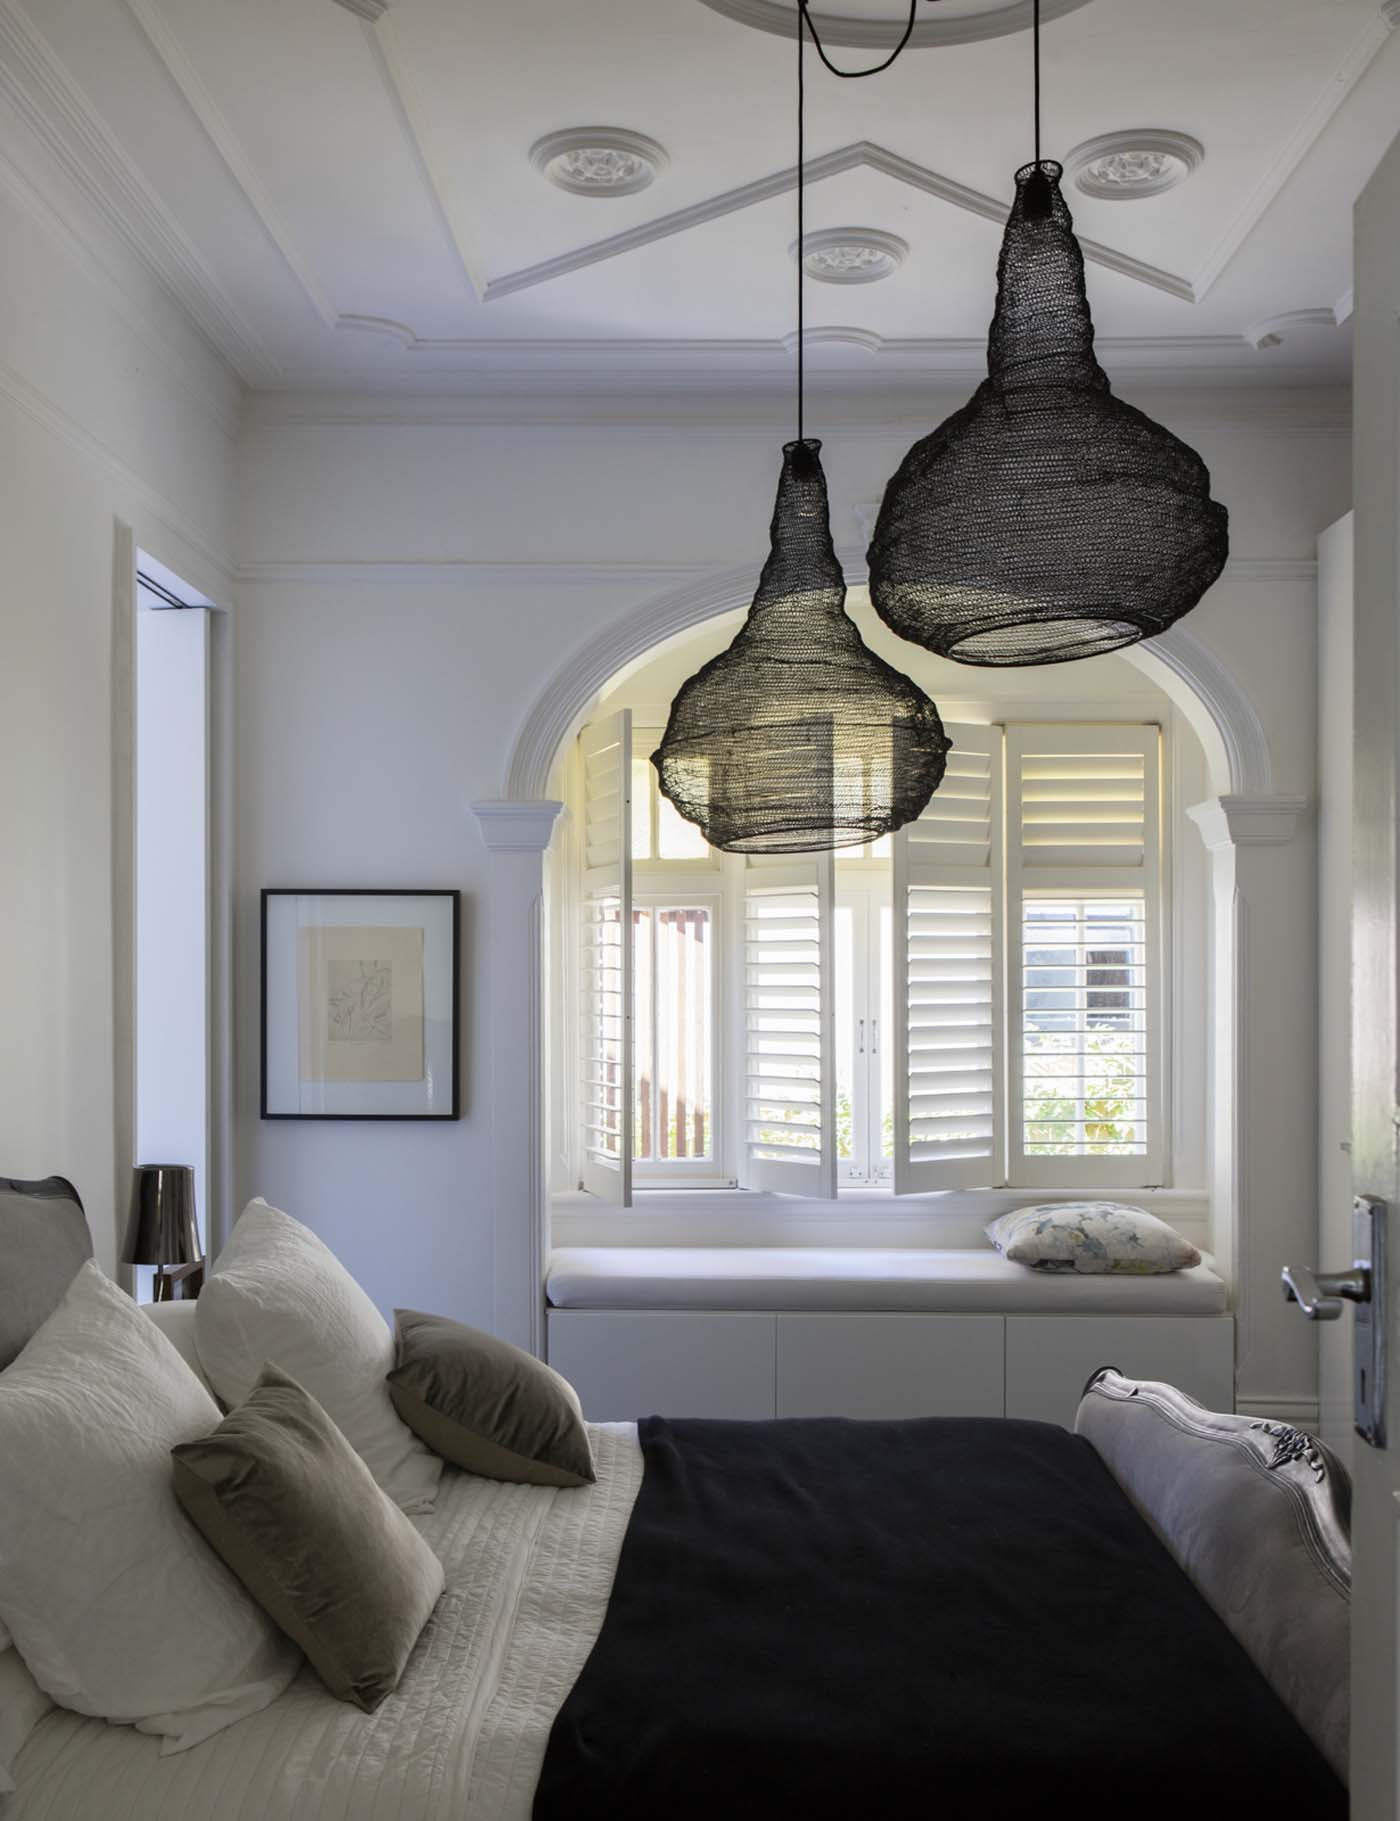 Sung Dobson house by Sam Crawford Architects, Sydney. Bedroom